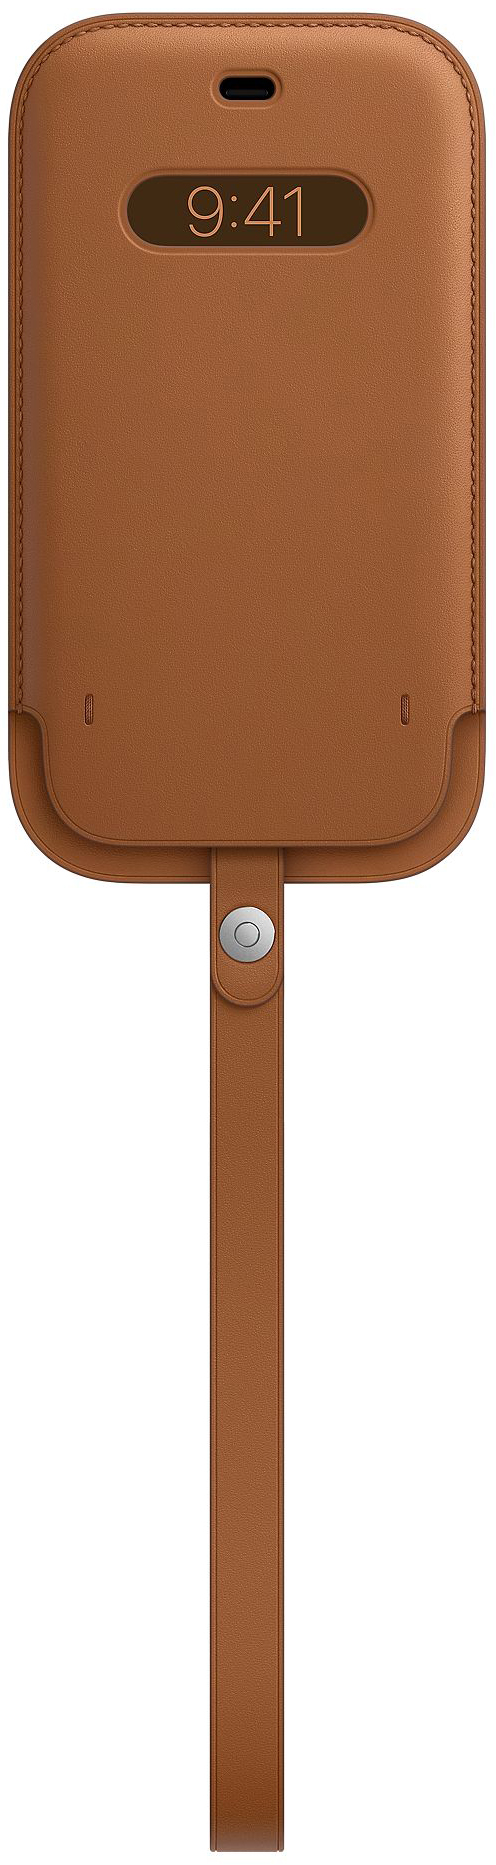 Iphone 12 Leather Sleeve With Magsafe